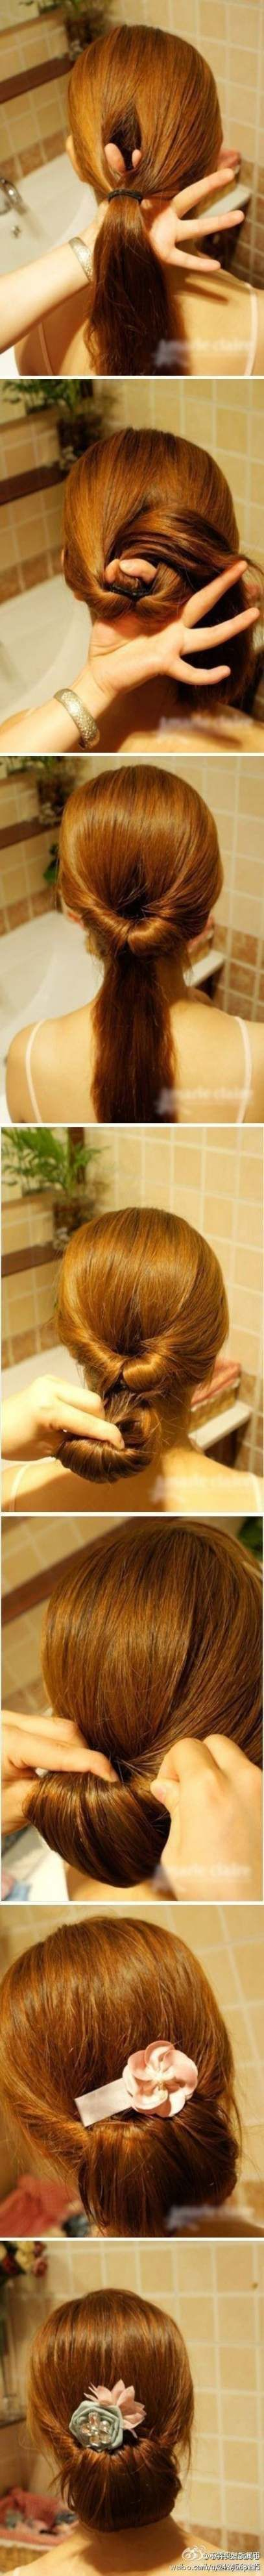 26 Ideas Hairstyles Updo Easy Lazy Girl Bobby Pins for 2019, #Bobby #Simple ...